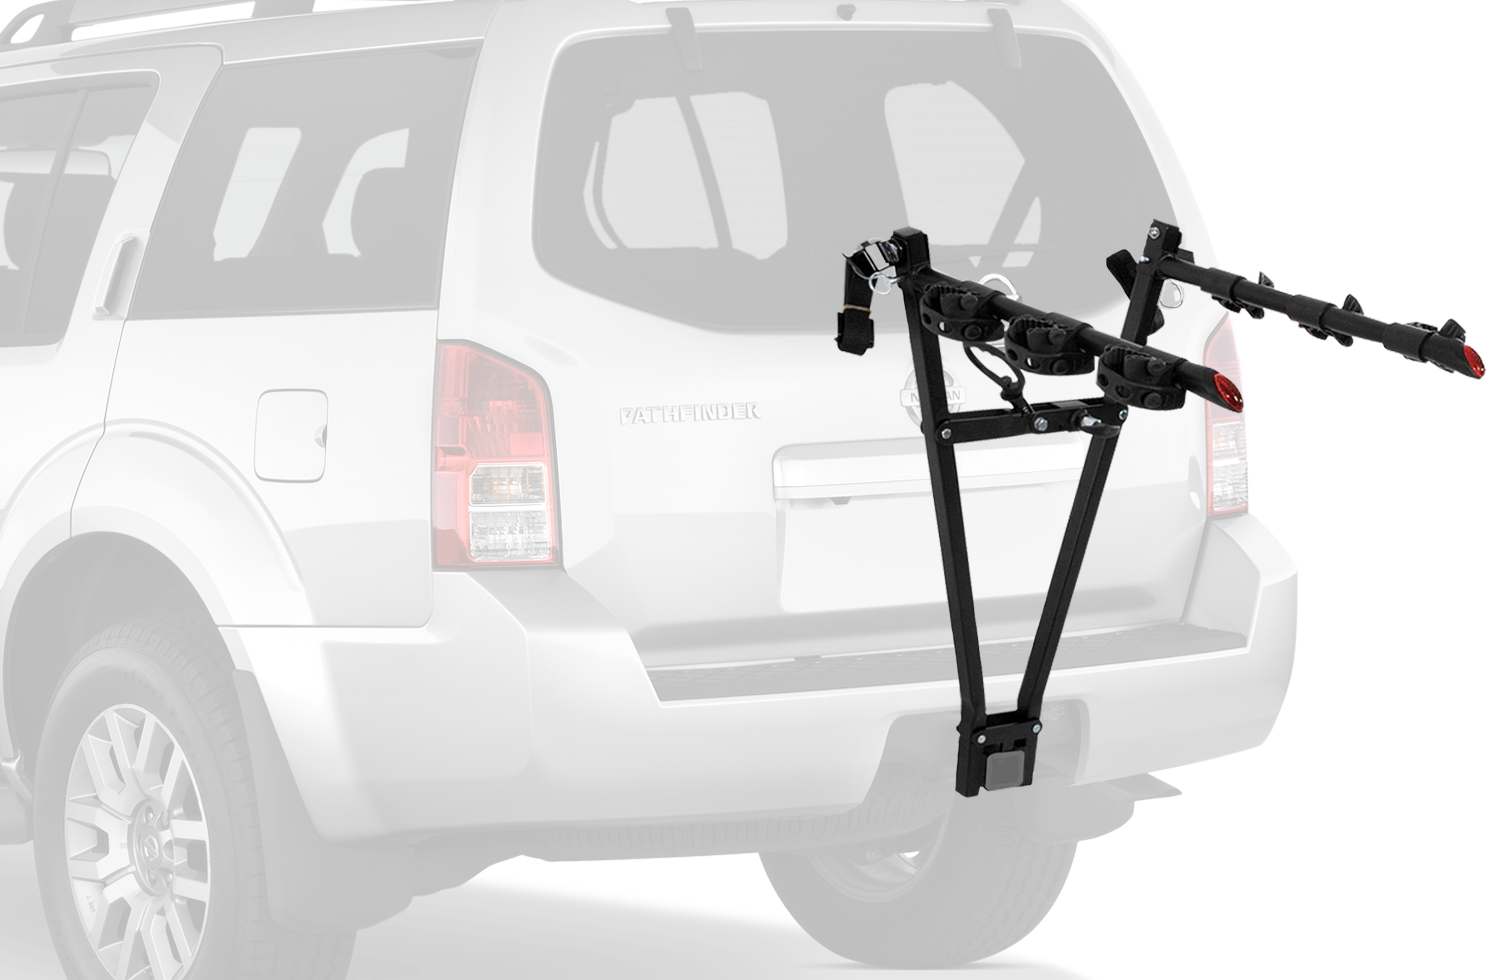 cargo ease rack installation instructions